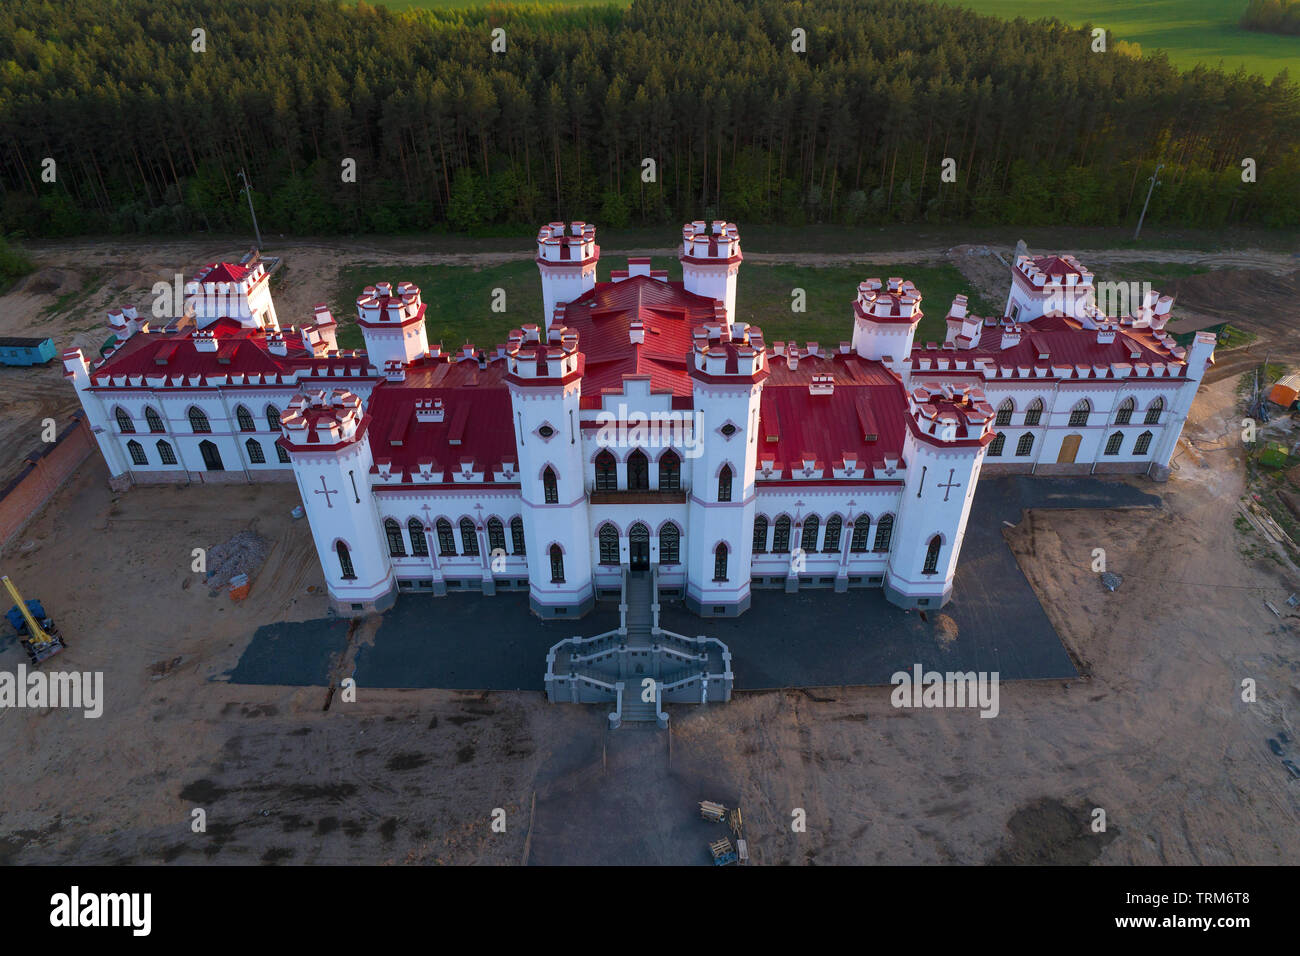 Renovated ancient castle-palace of Puslovsky close up on April evening (aerial photography). Kossovo, Belarus - Stock Image